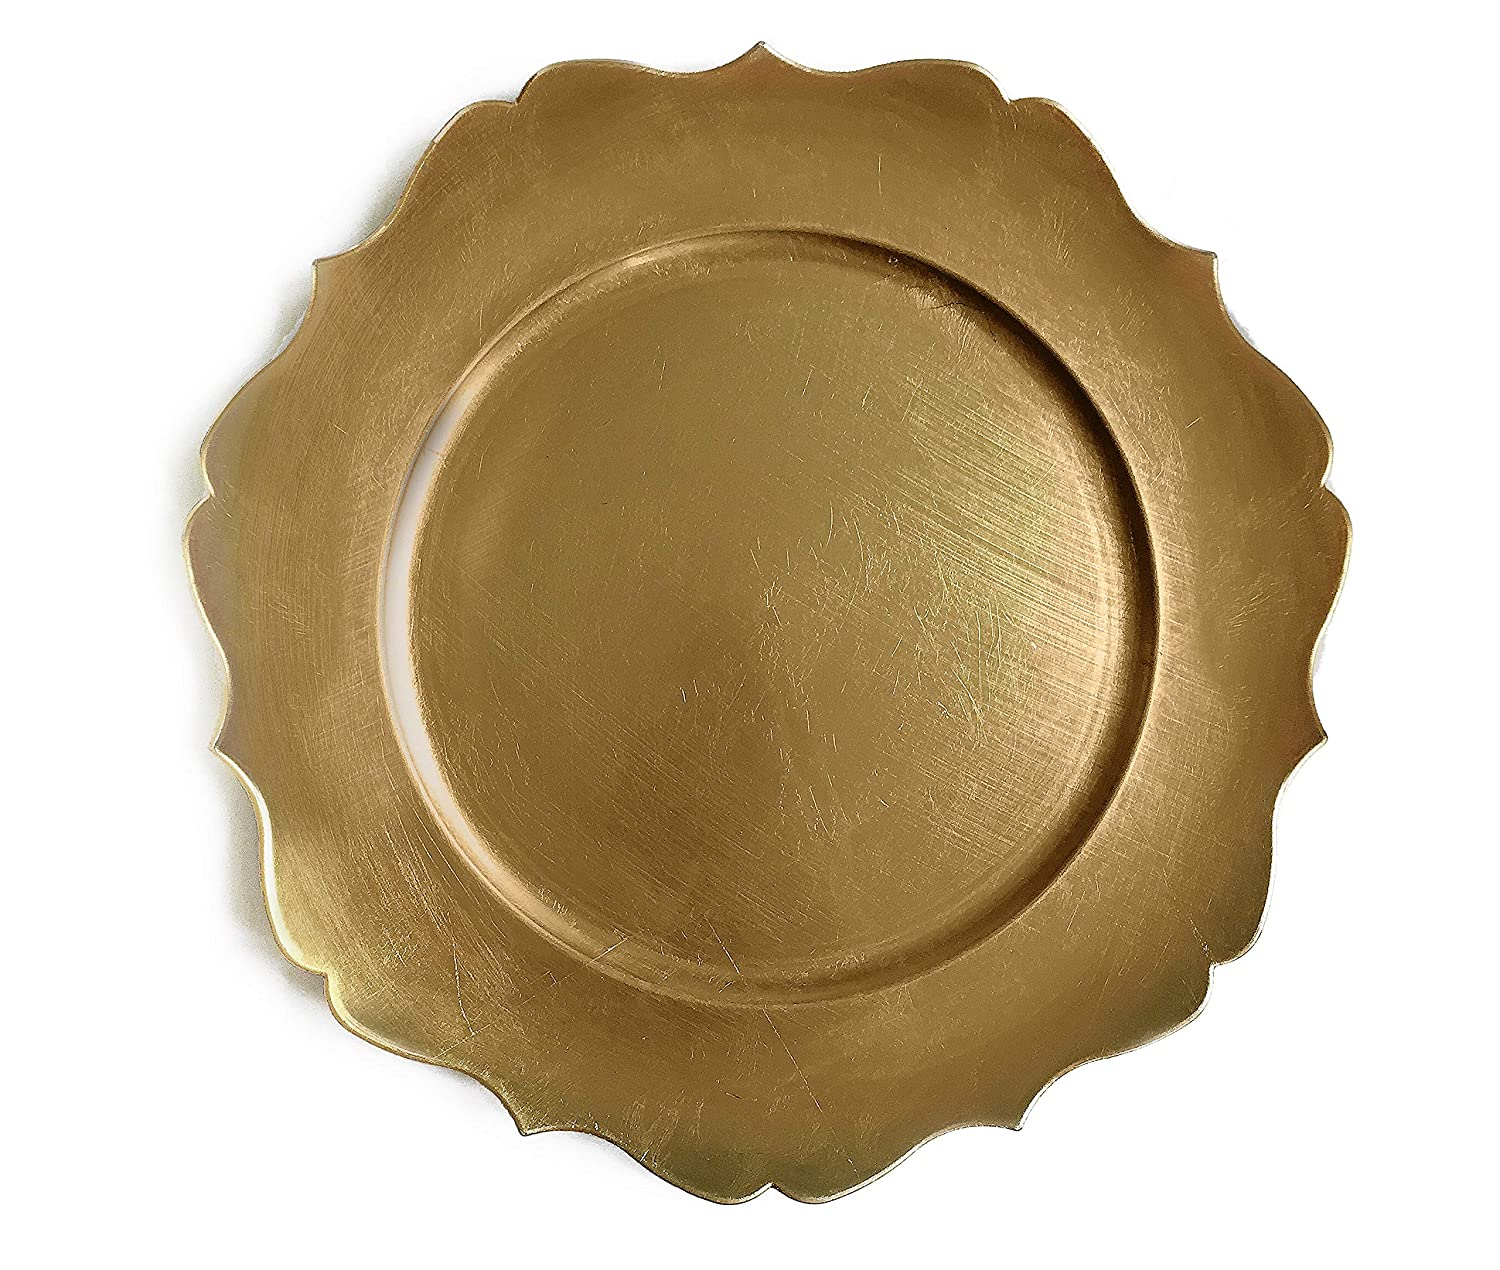 Tiger Chef 12-Piece 13-inch Gold Scalloped Rimmed Round Charger Plates, Set of 2,4,6, 12 or 24 Dinner Chargers for Wedding Reception Table Place Settings